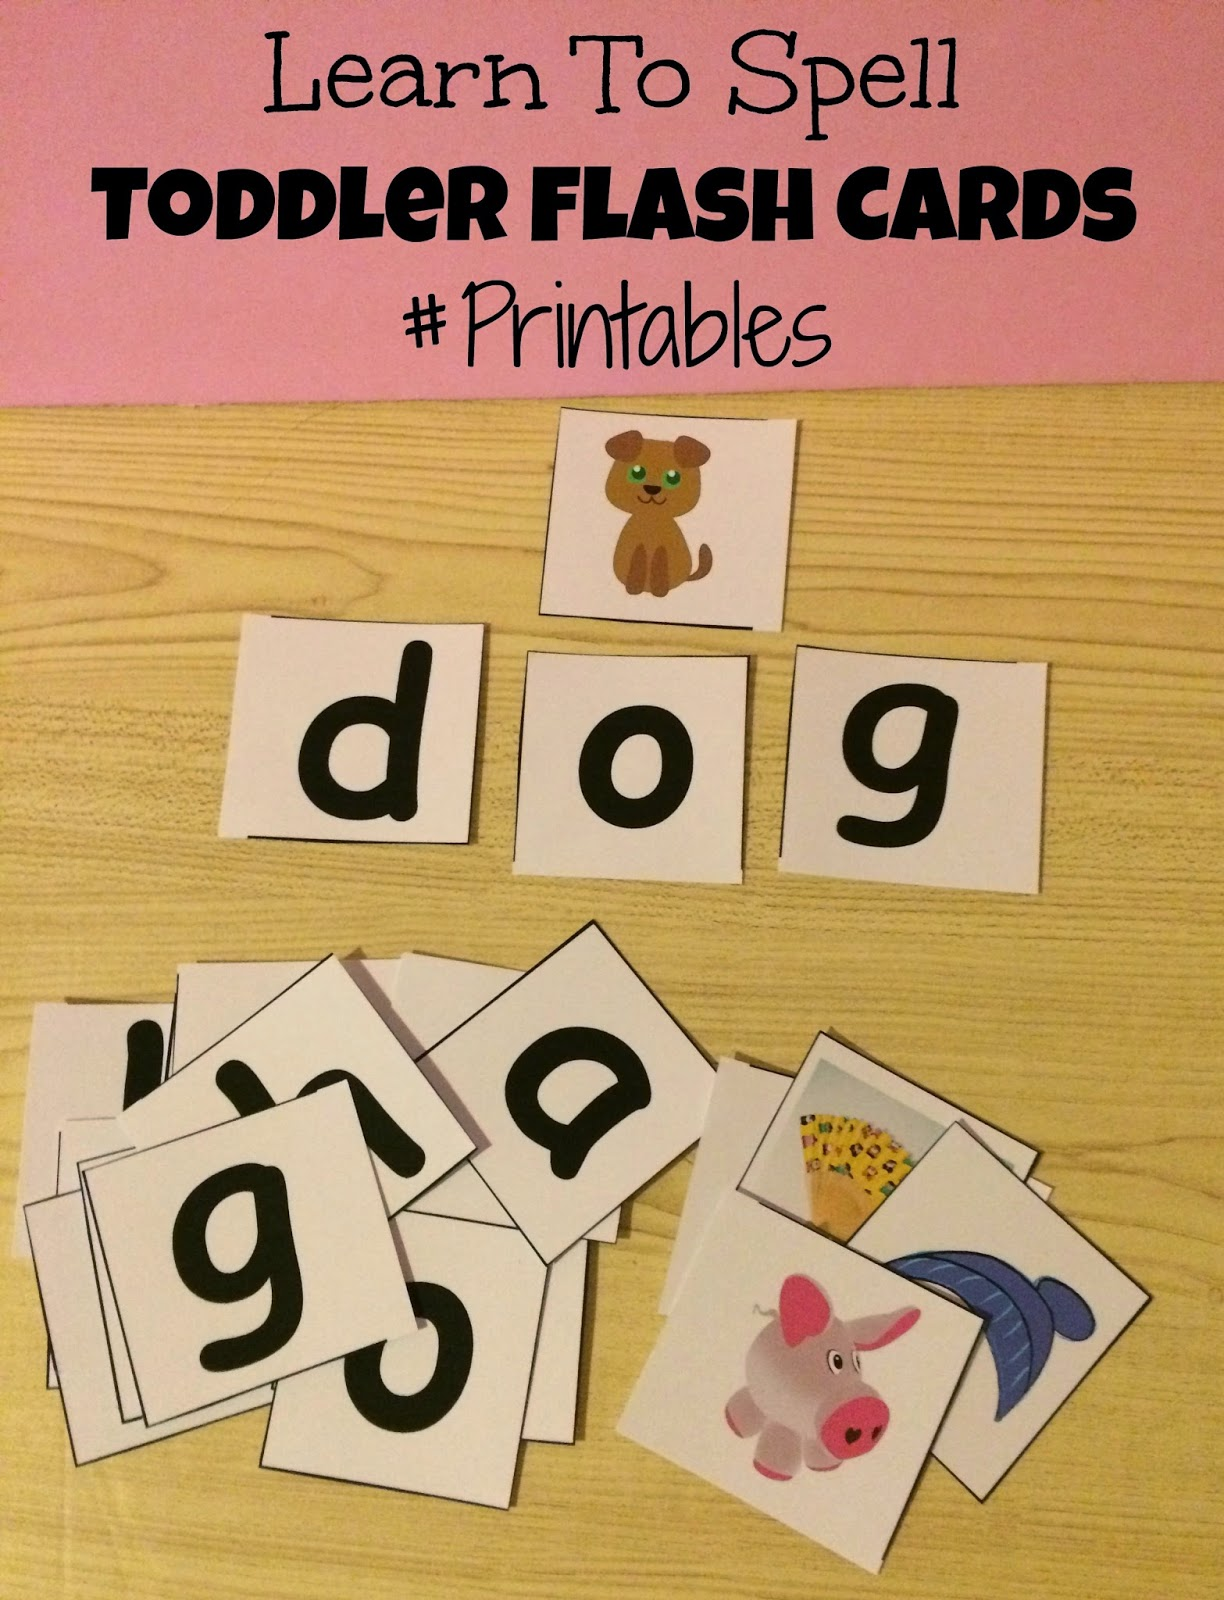 This is an image of Persnickety Printable Toddler Flash Cards